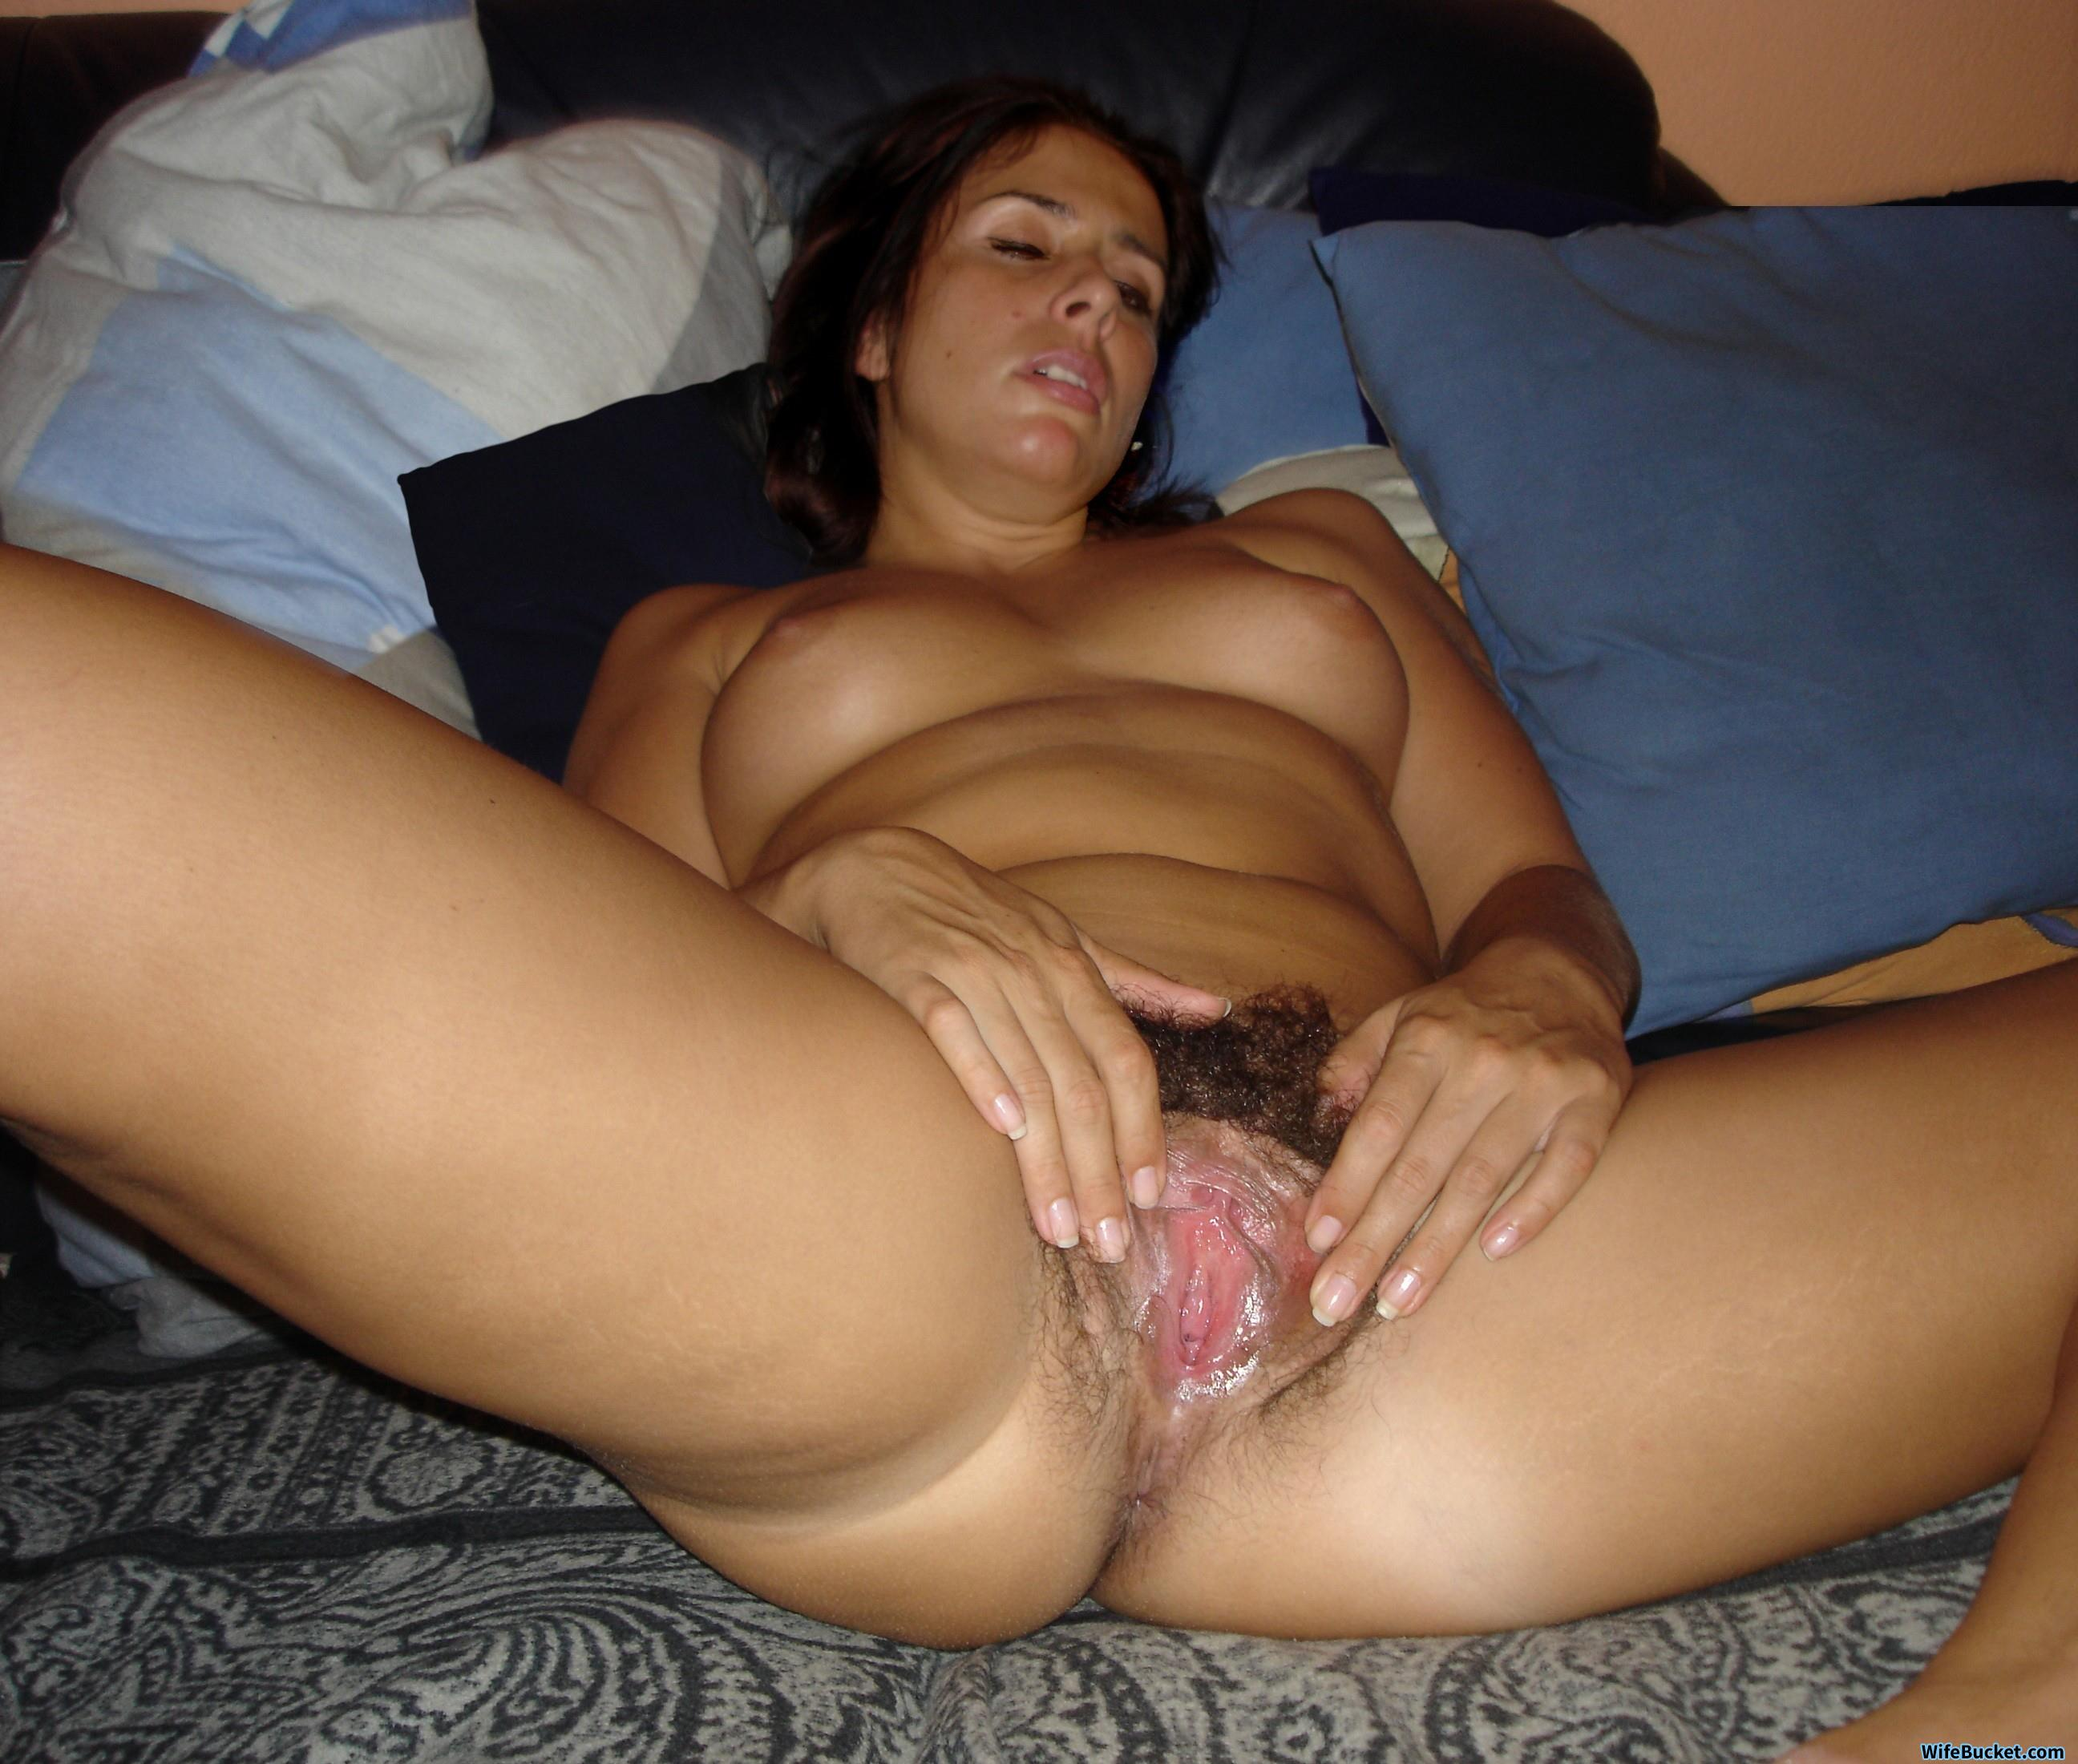 Nude wives and MILFs Archives | WifeBucket | Offical MILF Blog